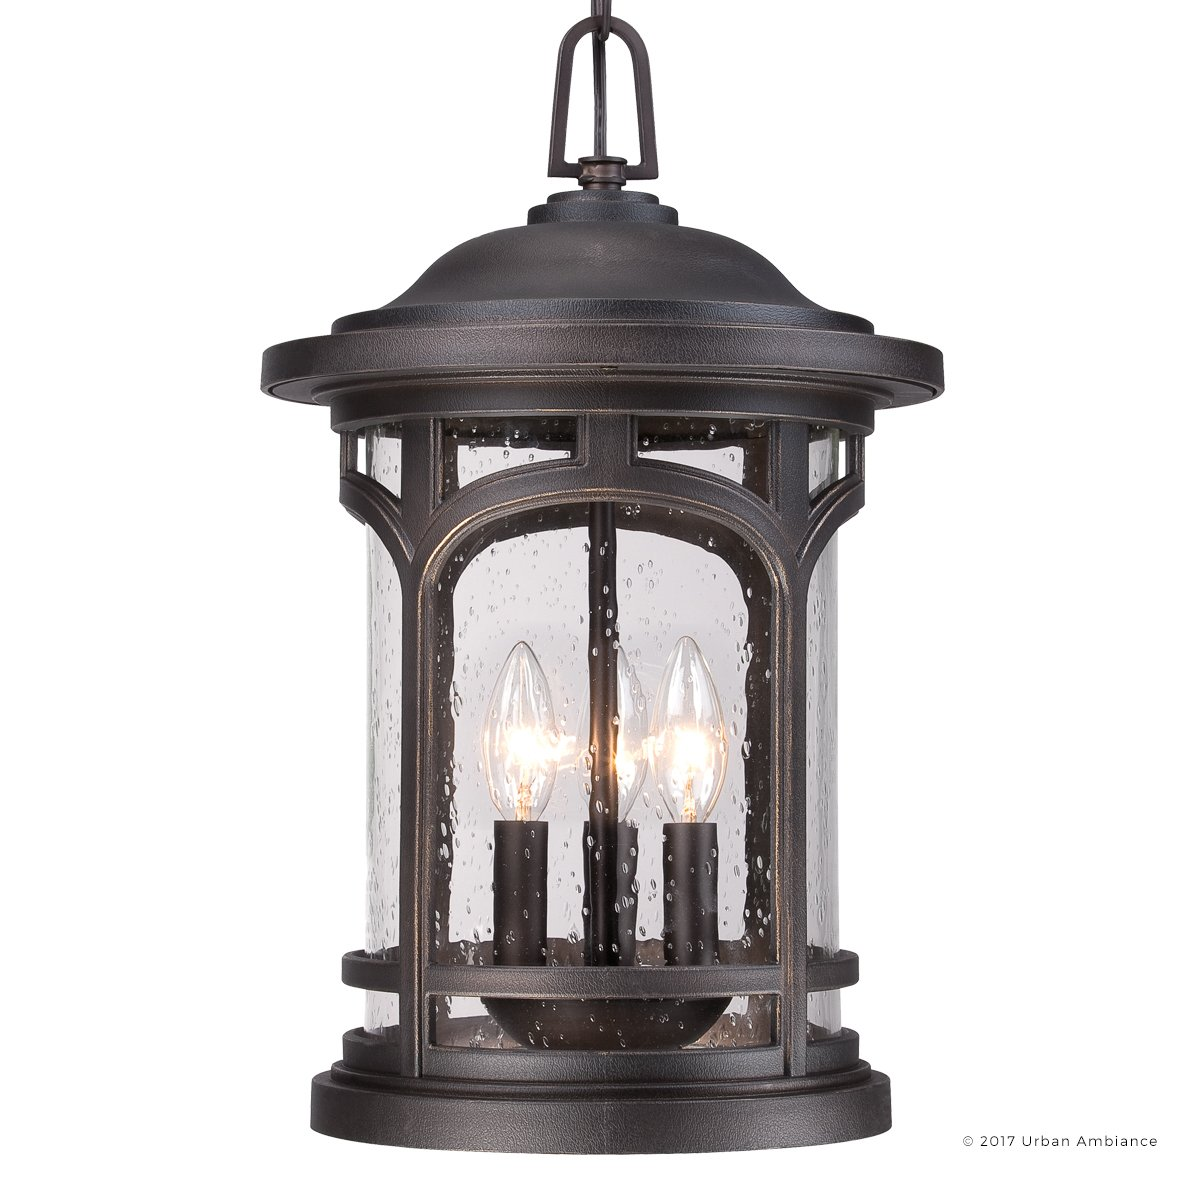 Luxury Rustic Outdoor Pendant Light, Large Size: 18''H x 11''W, with Colonial Style Elements, Wrought Iron Design, Oil Rubbed Parisian Bronze Finish and Seeded Glass, UQL1109 by Urban Ambiance